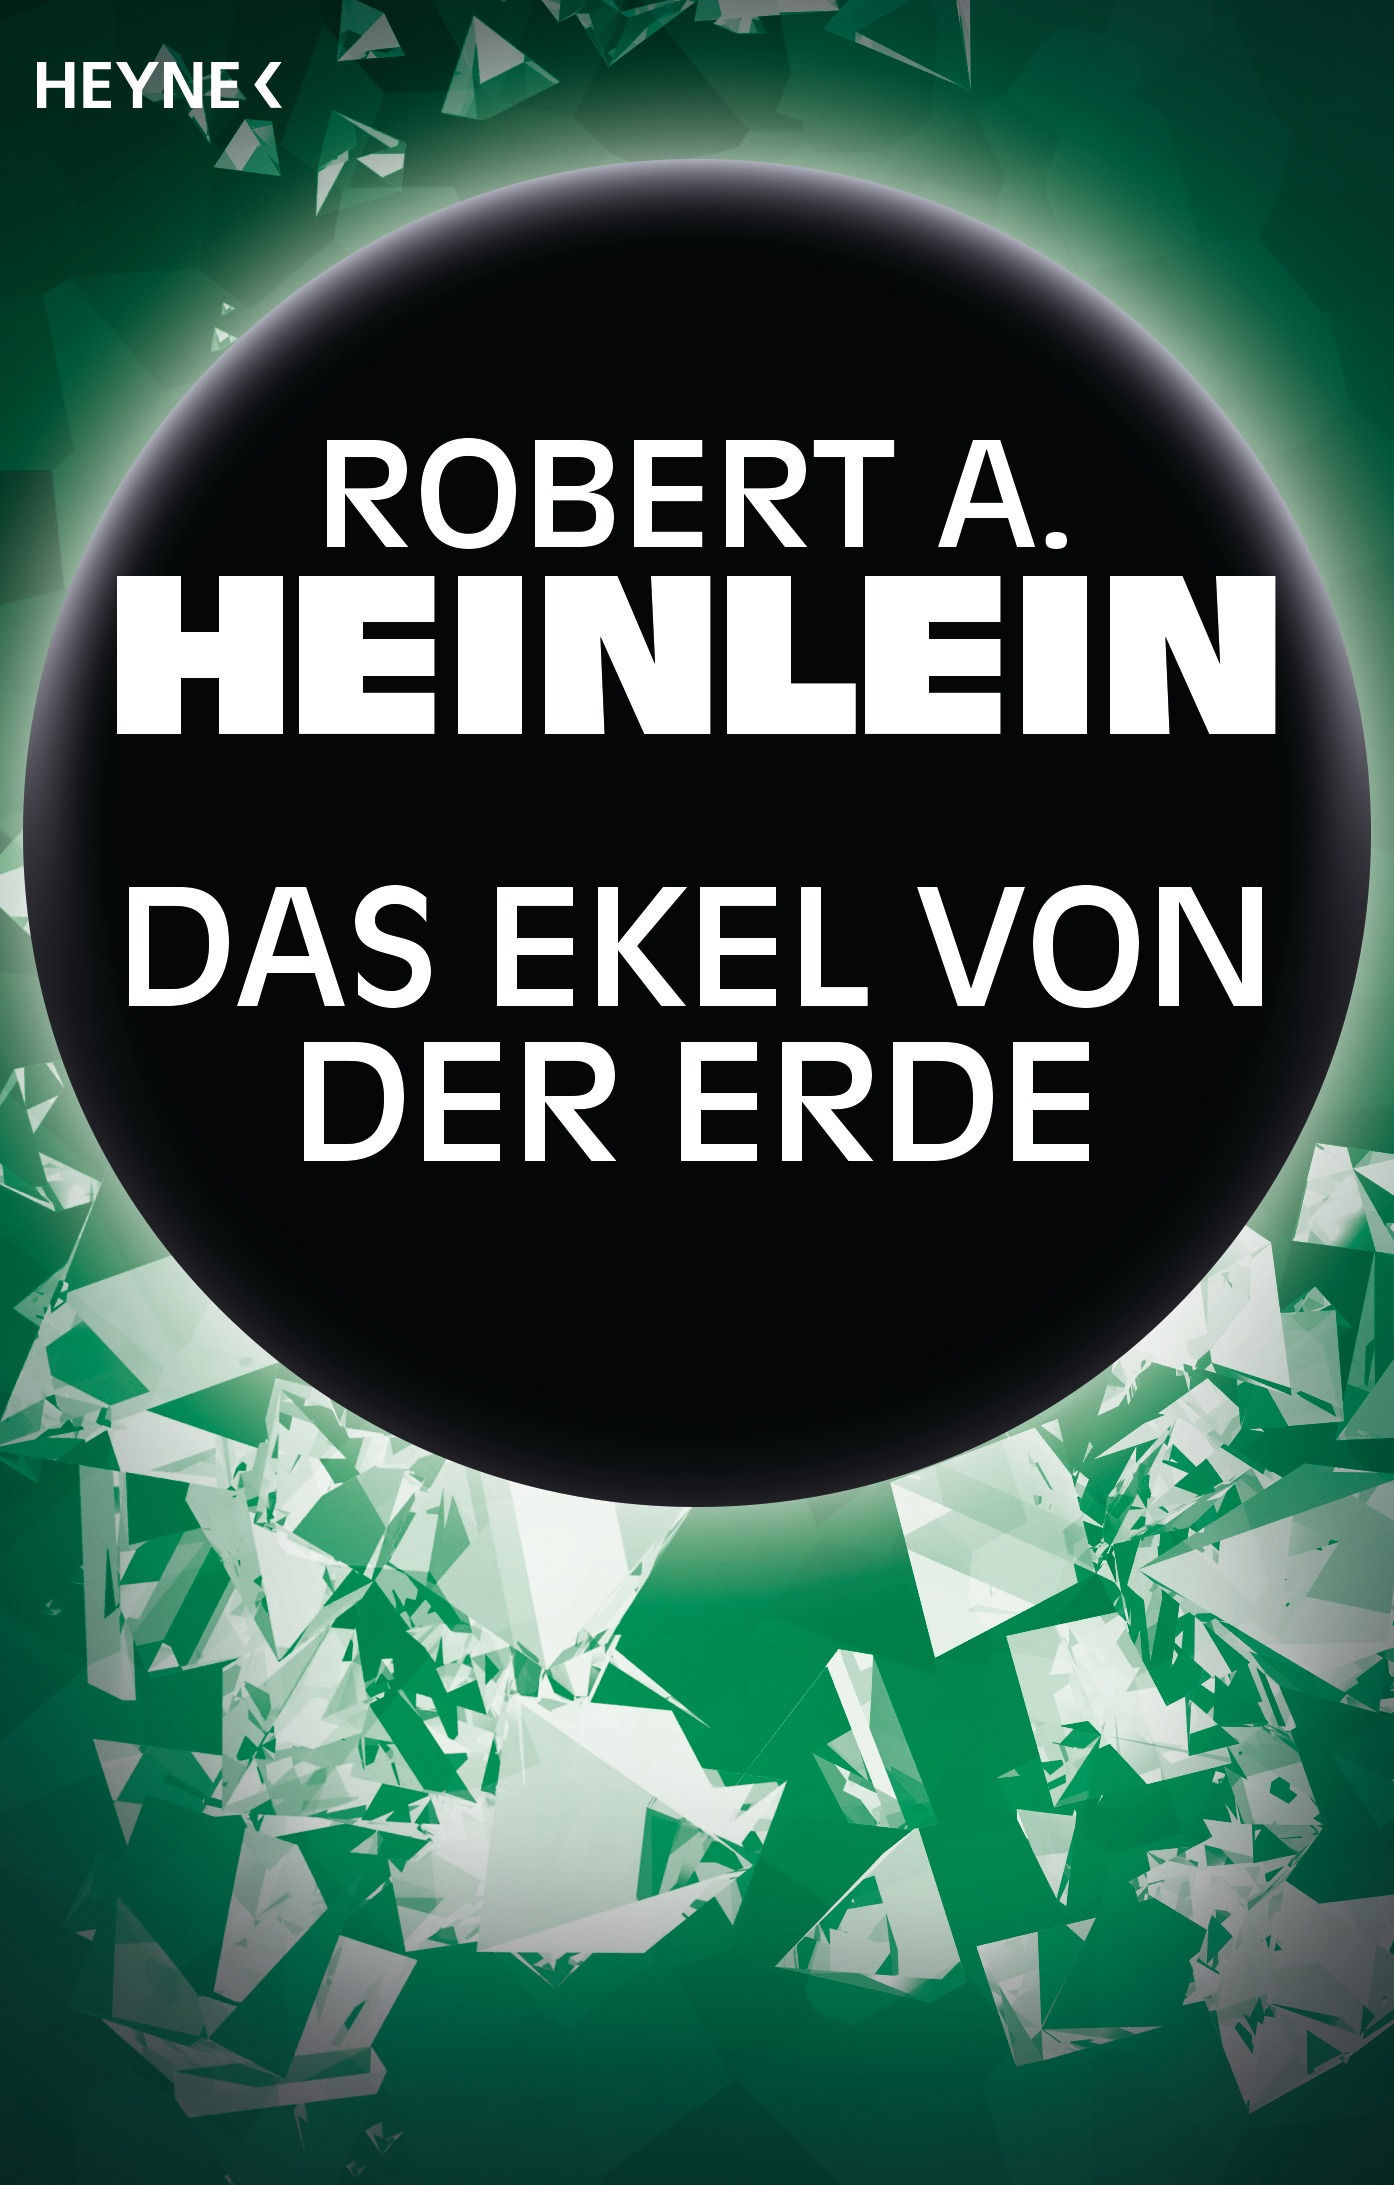 robert a heinlein das ekel von der erde heyne verlag. Black Bedroom Furniture Sets. Home Design Ideas